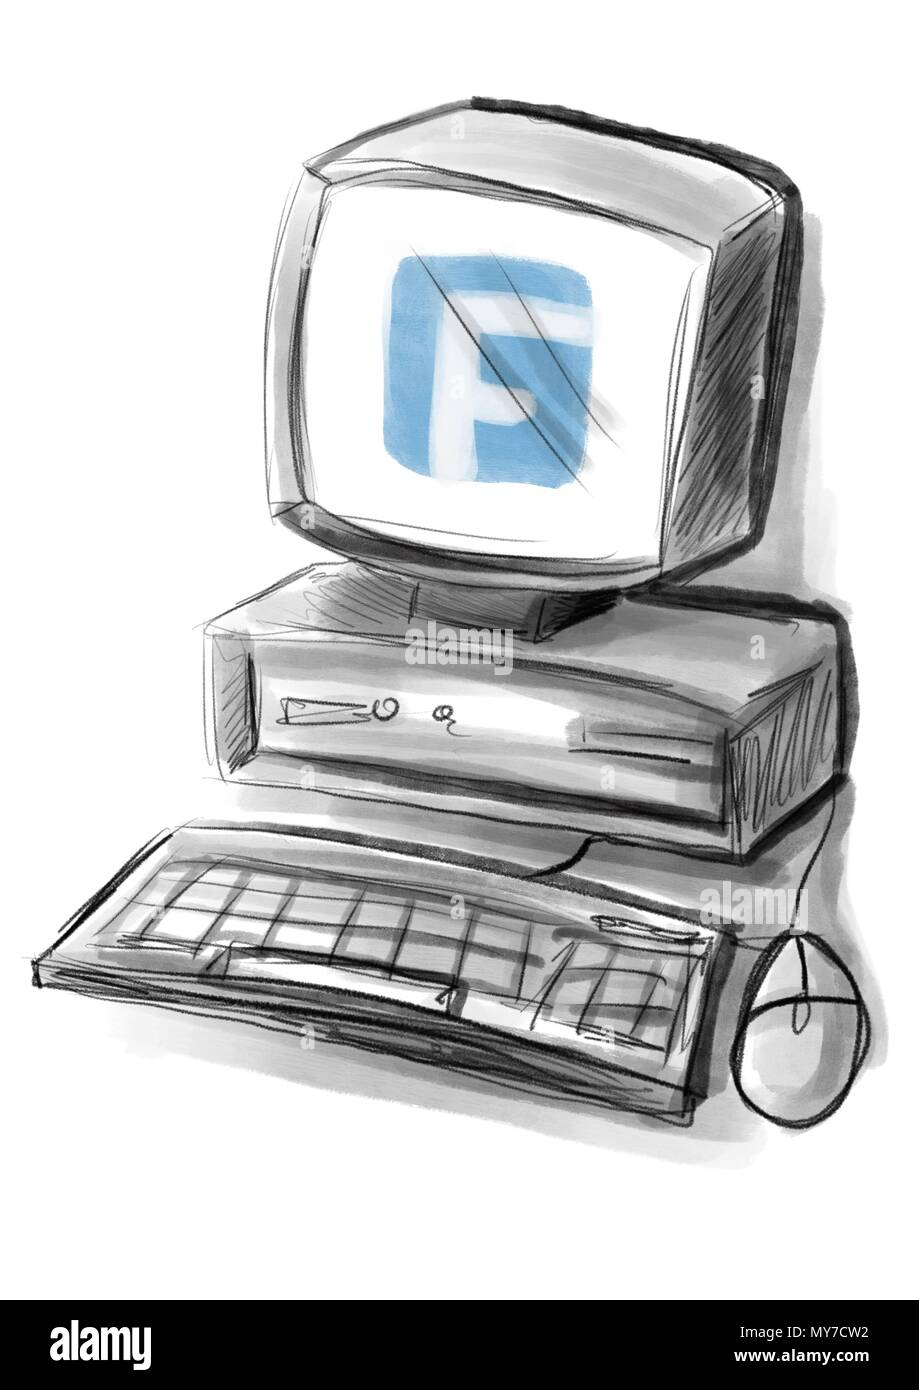 a computer illustration with the facebook logo on the screen - Stock Image